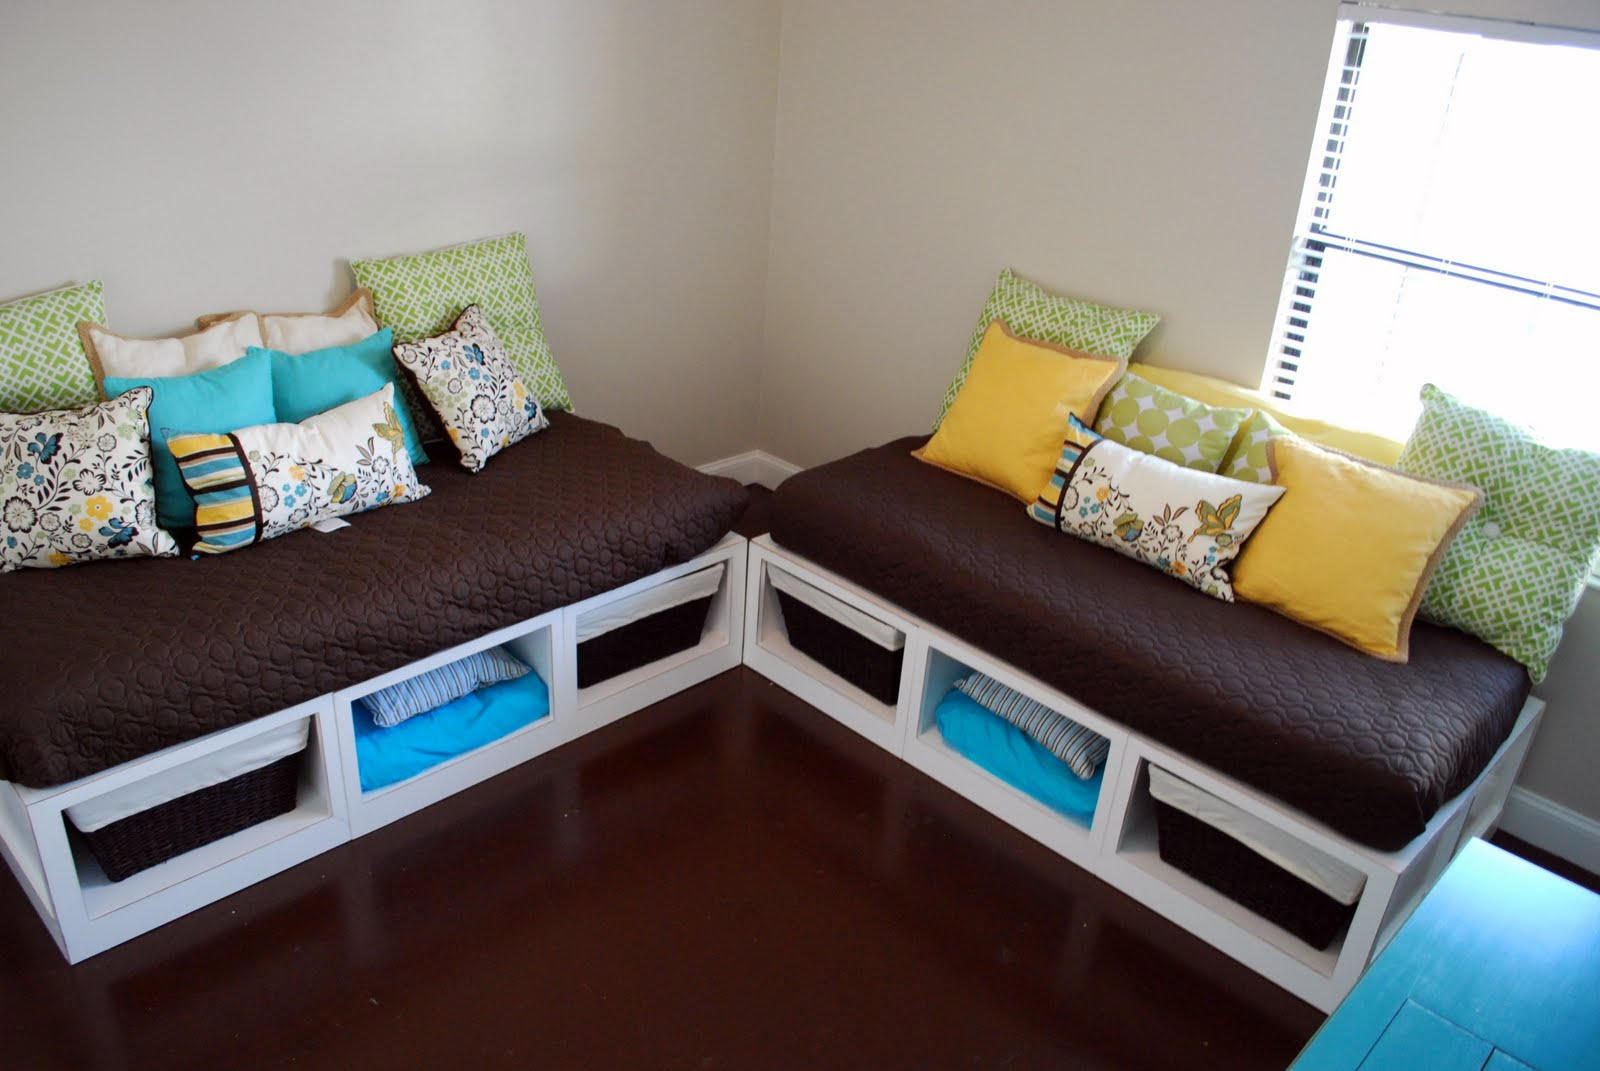 Remodelaholic | Building Your Own Daybeds